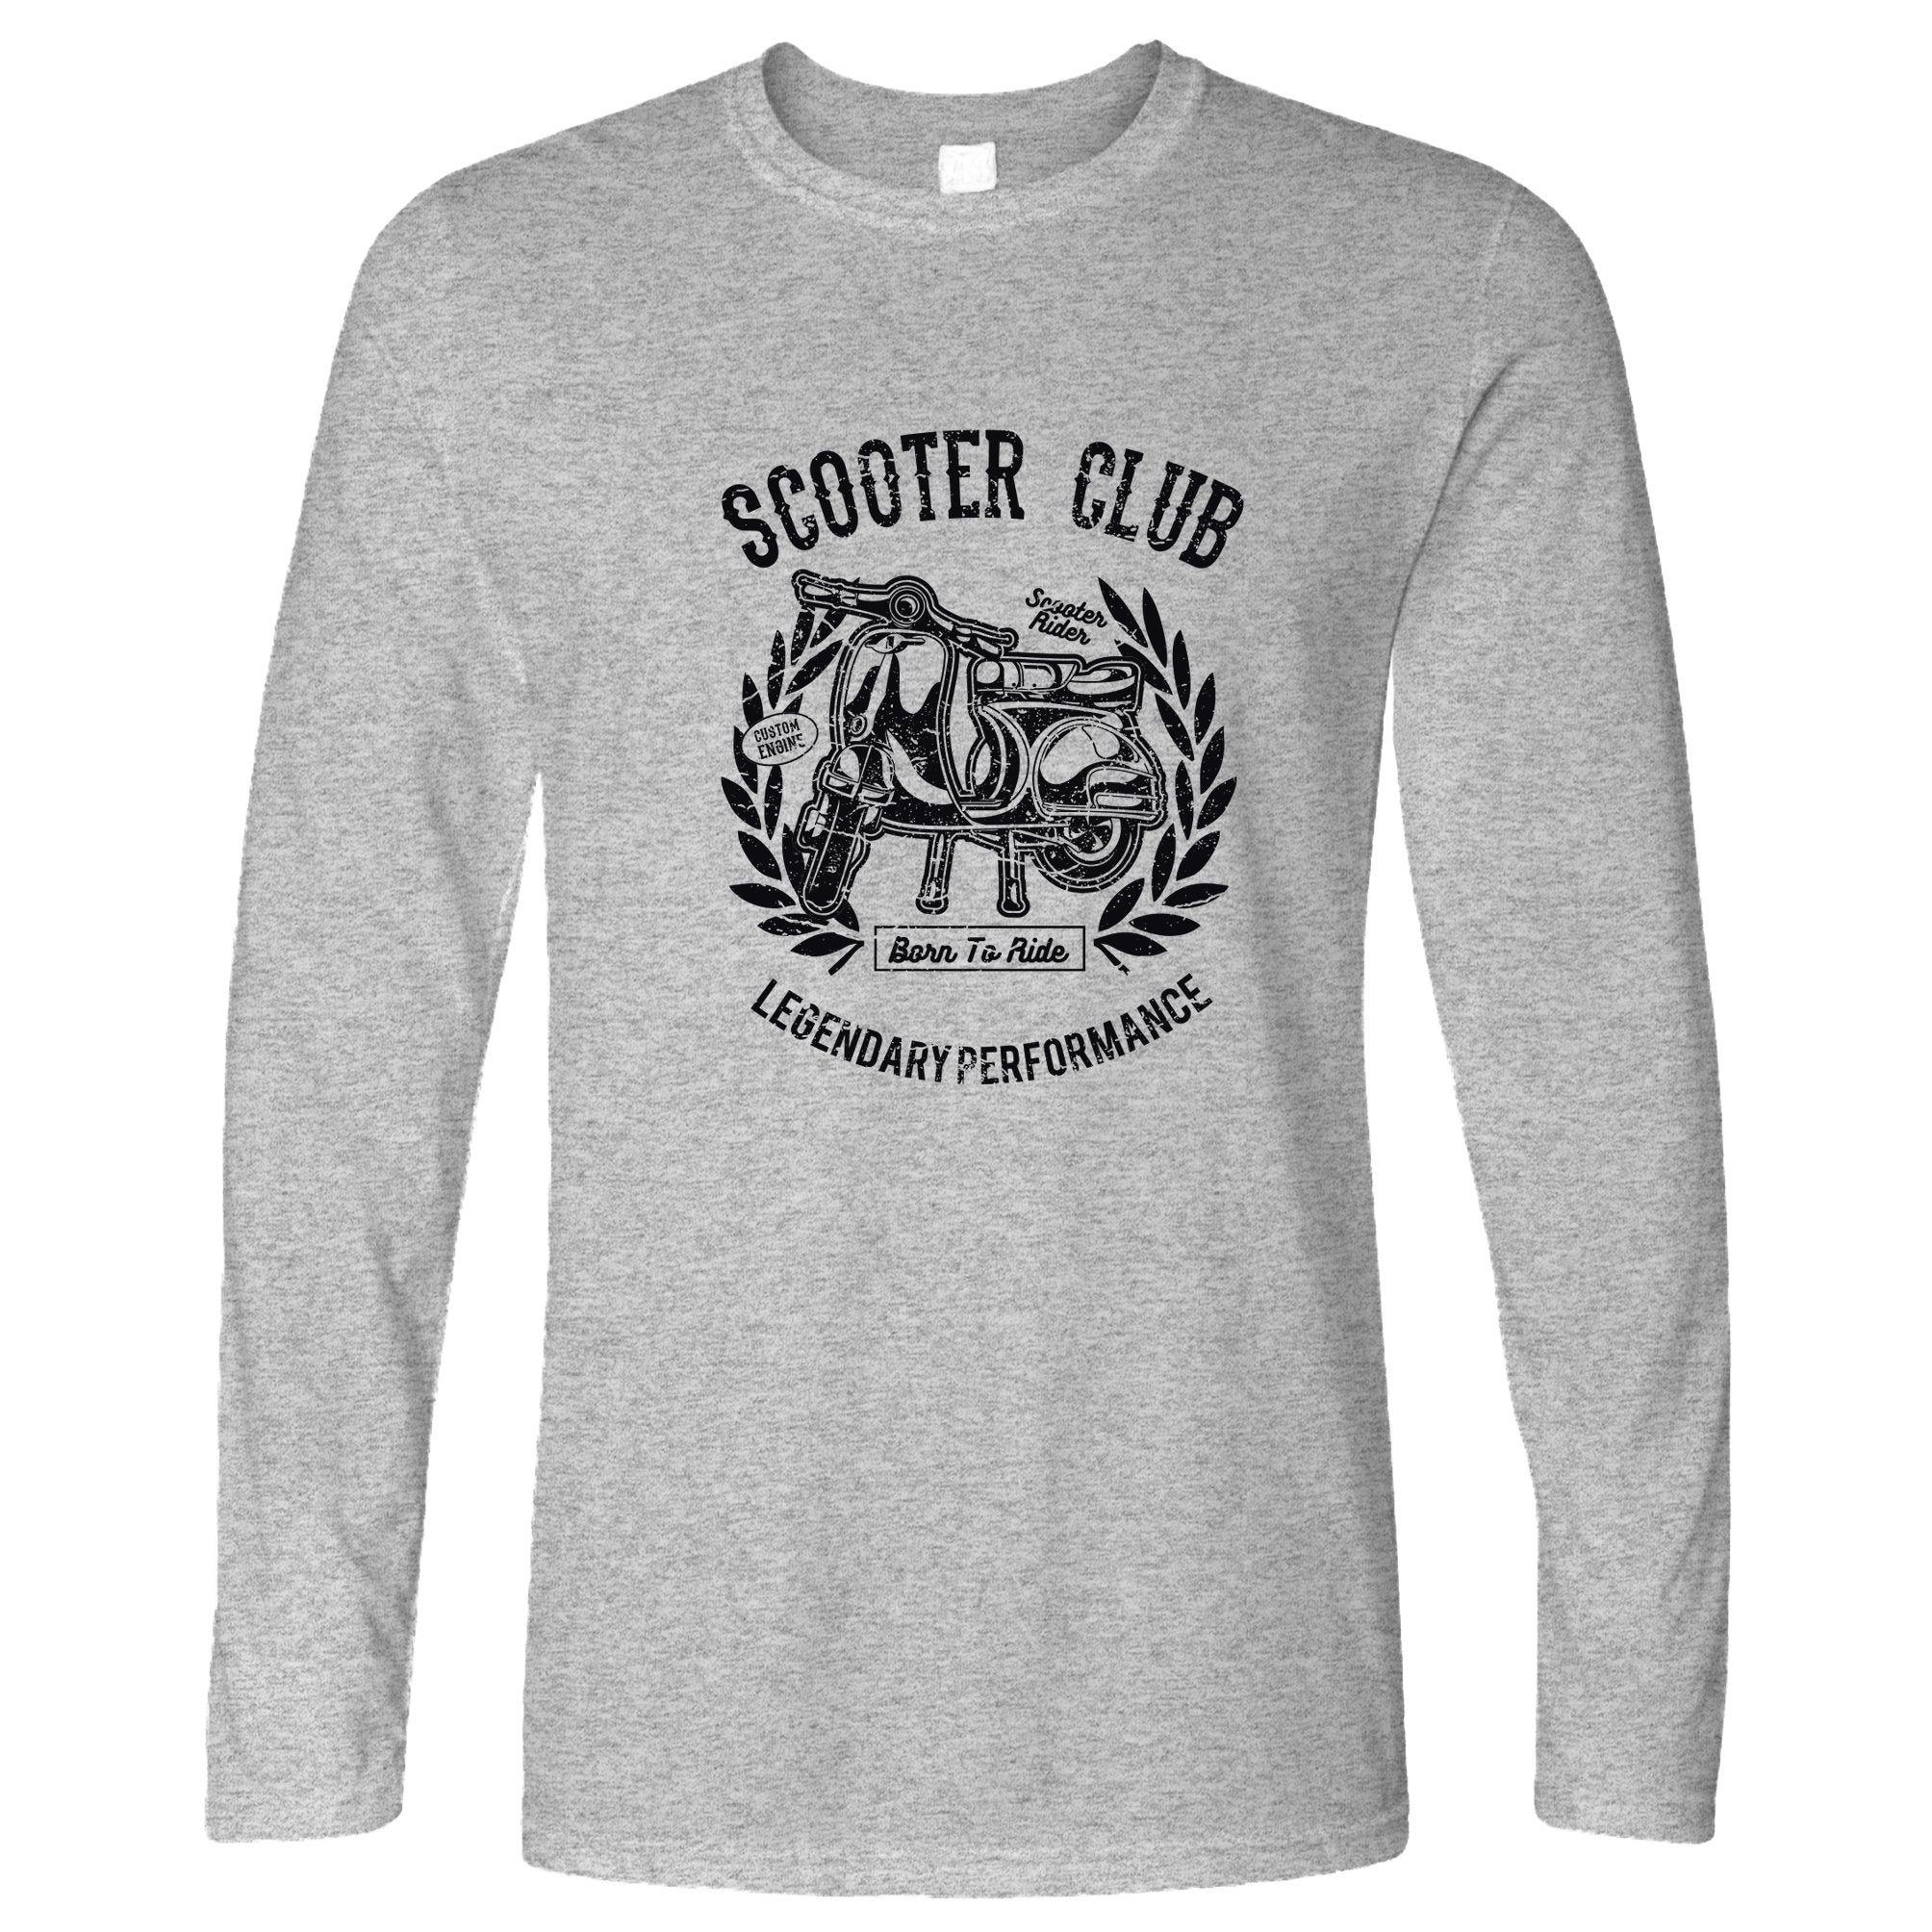 Motorbike Long Sleeve Scooter Club Legendary Performance T-Shirt